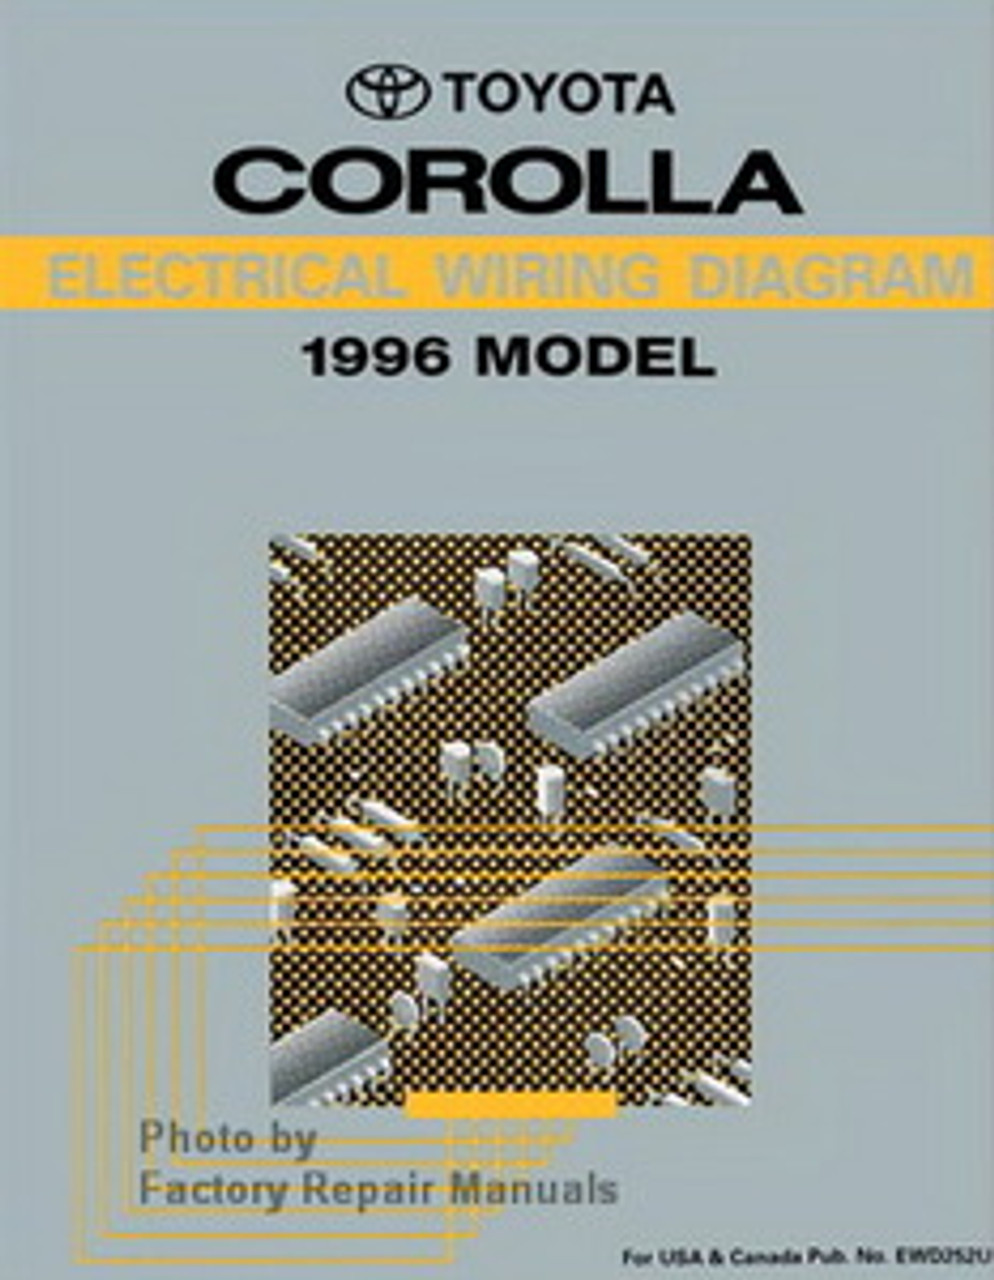 1996 toyota corolla electrical wiring diagrams original manual - factory  repair manuals  factory repair manuals